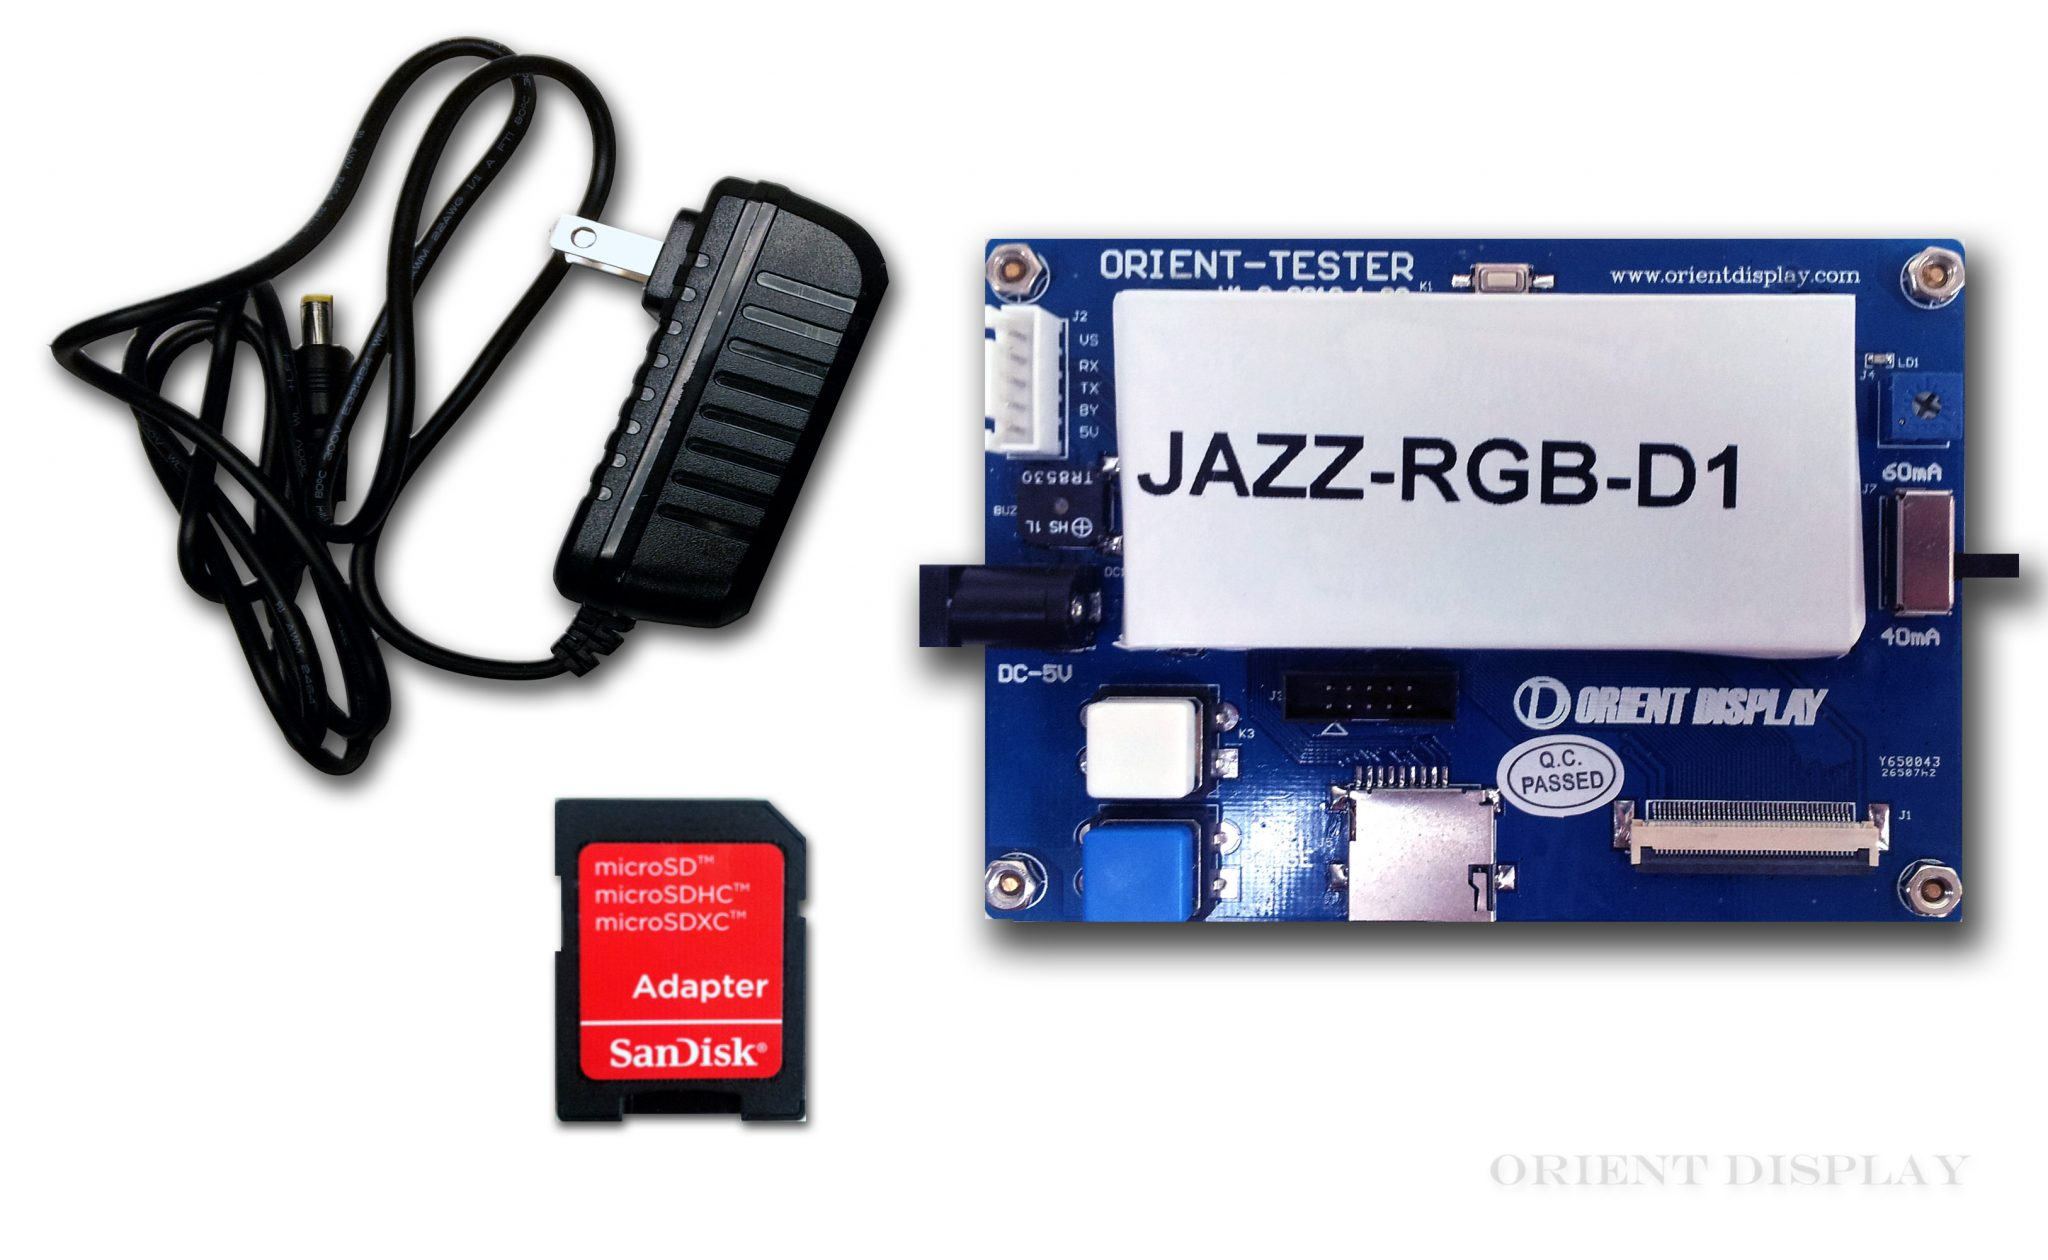 "JAZZ-RGB-D1 (Demo Board for 3.5"", 4.3"", 5.0"", and 7.0"" TFTs)"